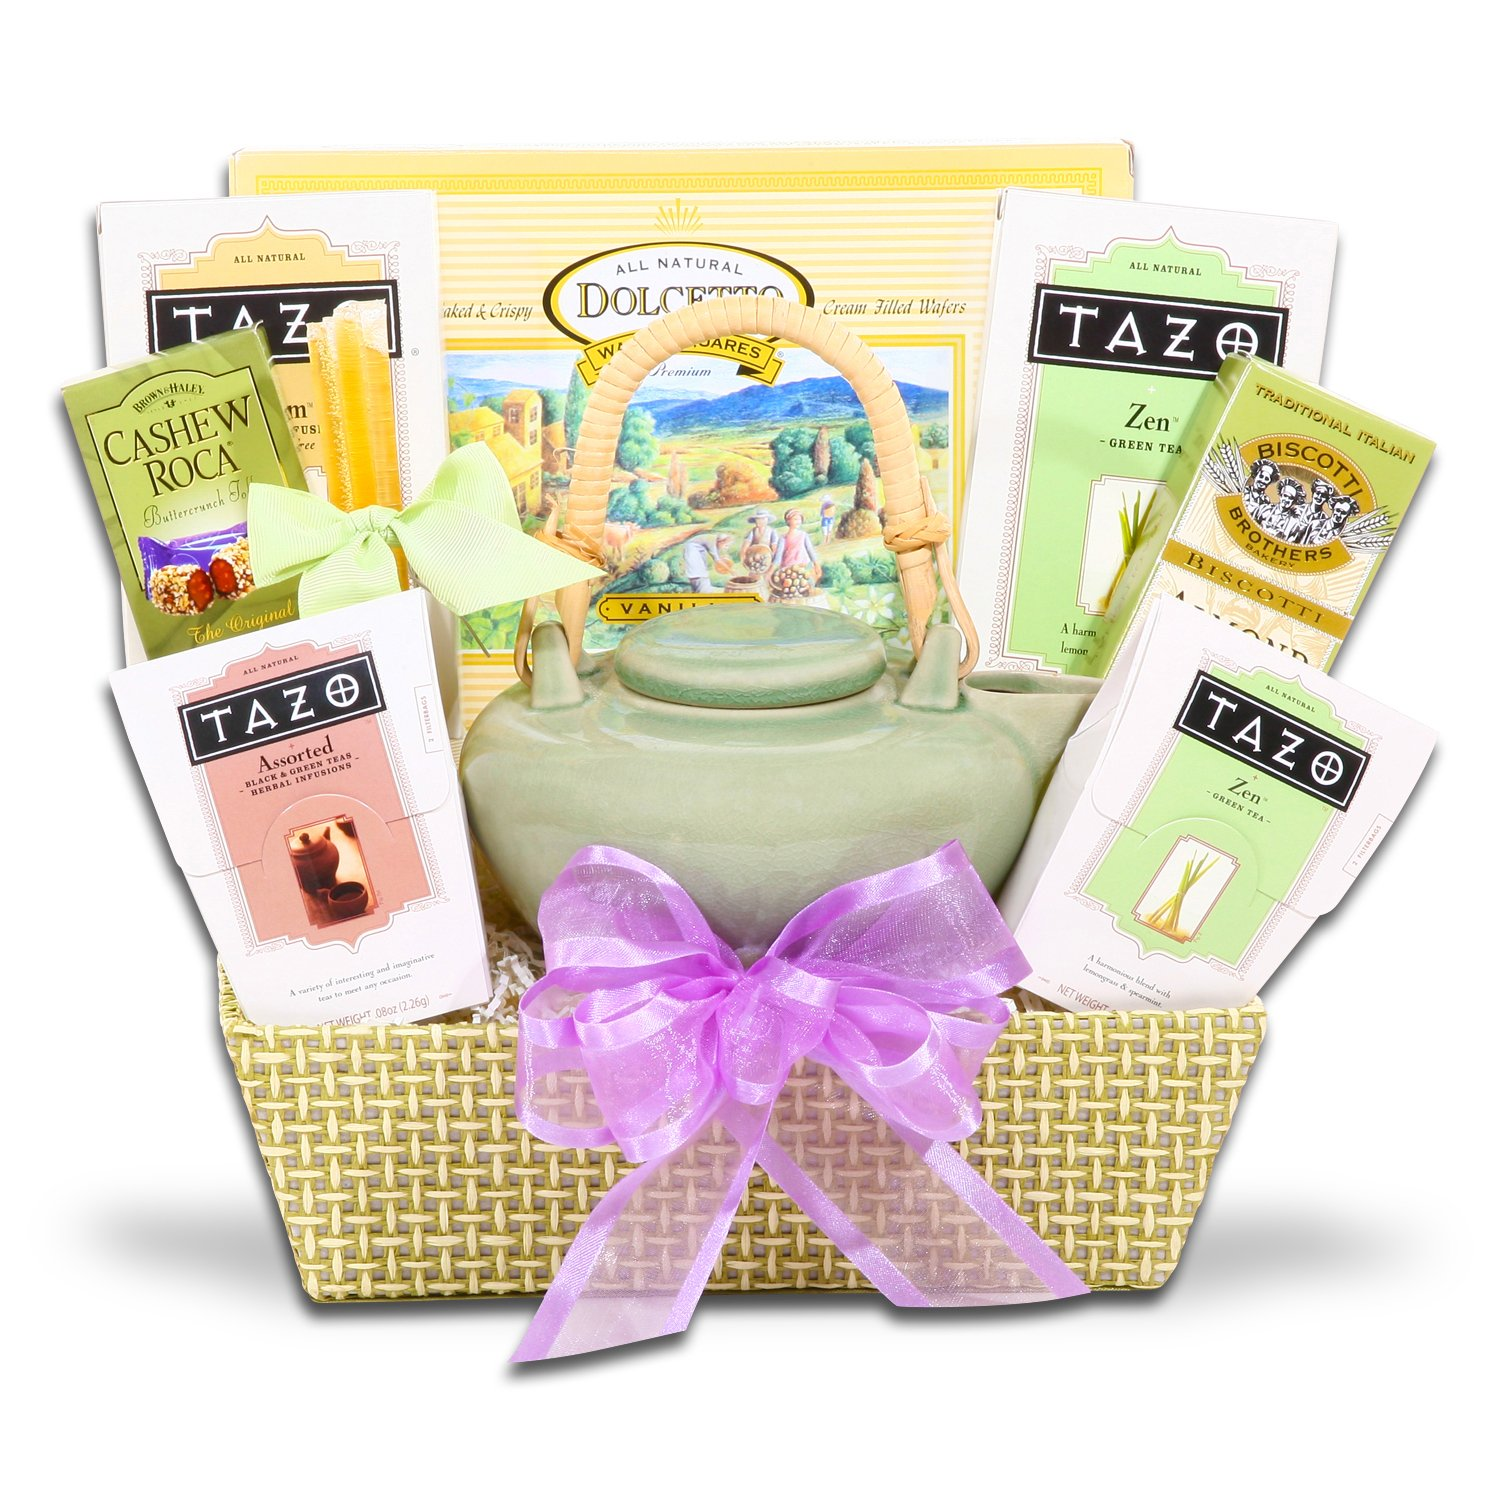 Amazon.com : Tazo Tea Gift Set w/ Walkers Cookies and Biscotti : Gourmet Snacks And Hors Doeuvres Gifts : Grocery & Gourmet Food